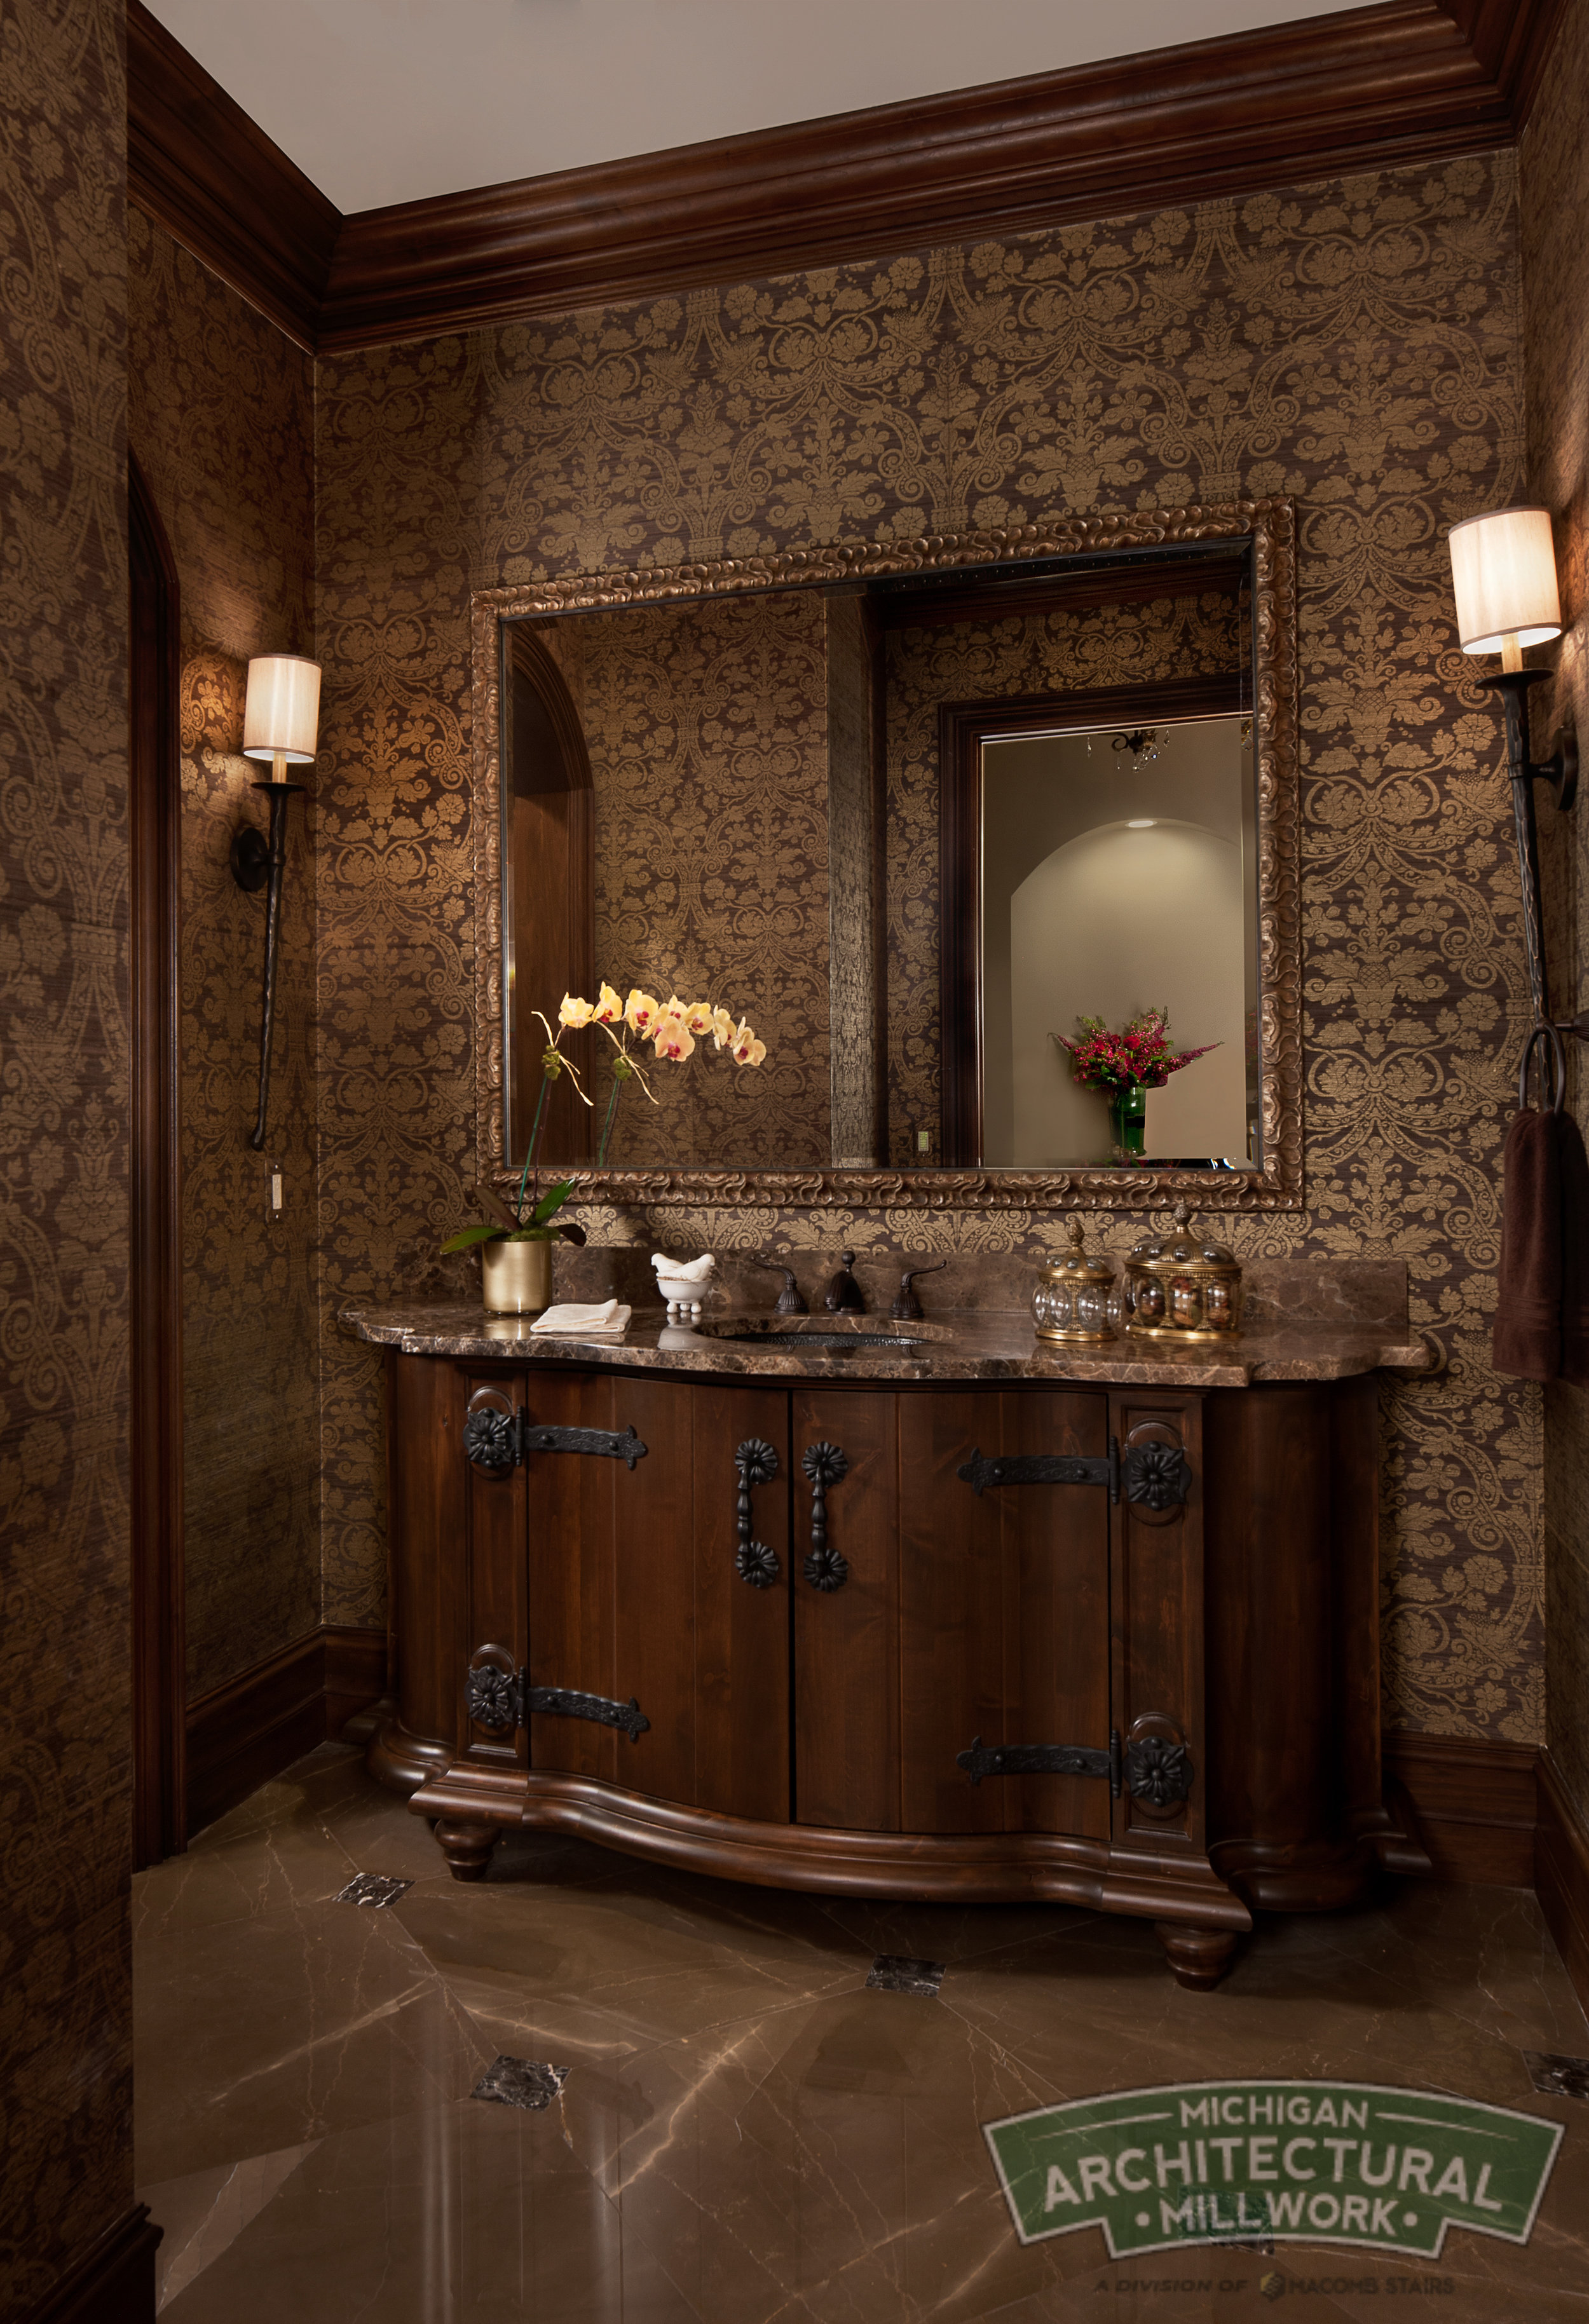 Michigan Architectural Millwork- Moulding and Millwork Photo-18.jpg